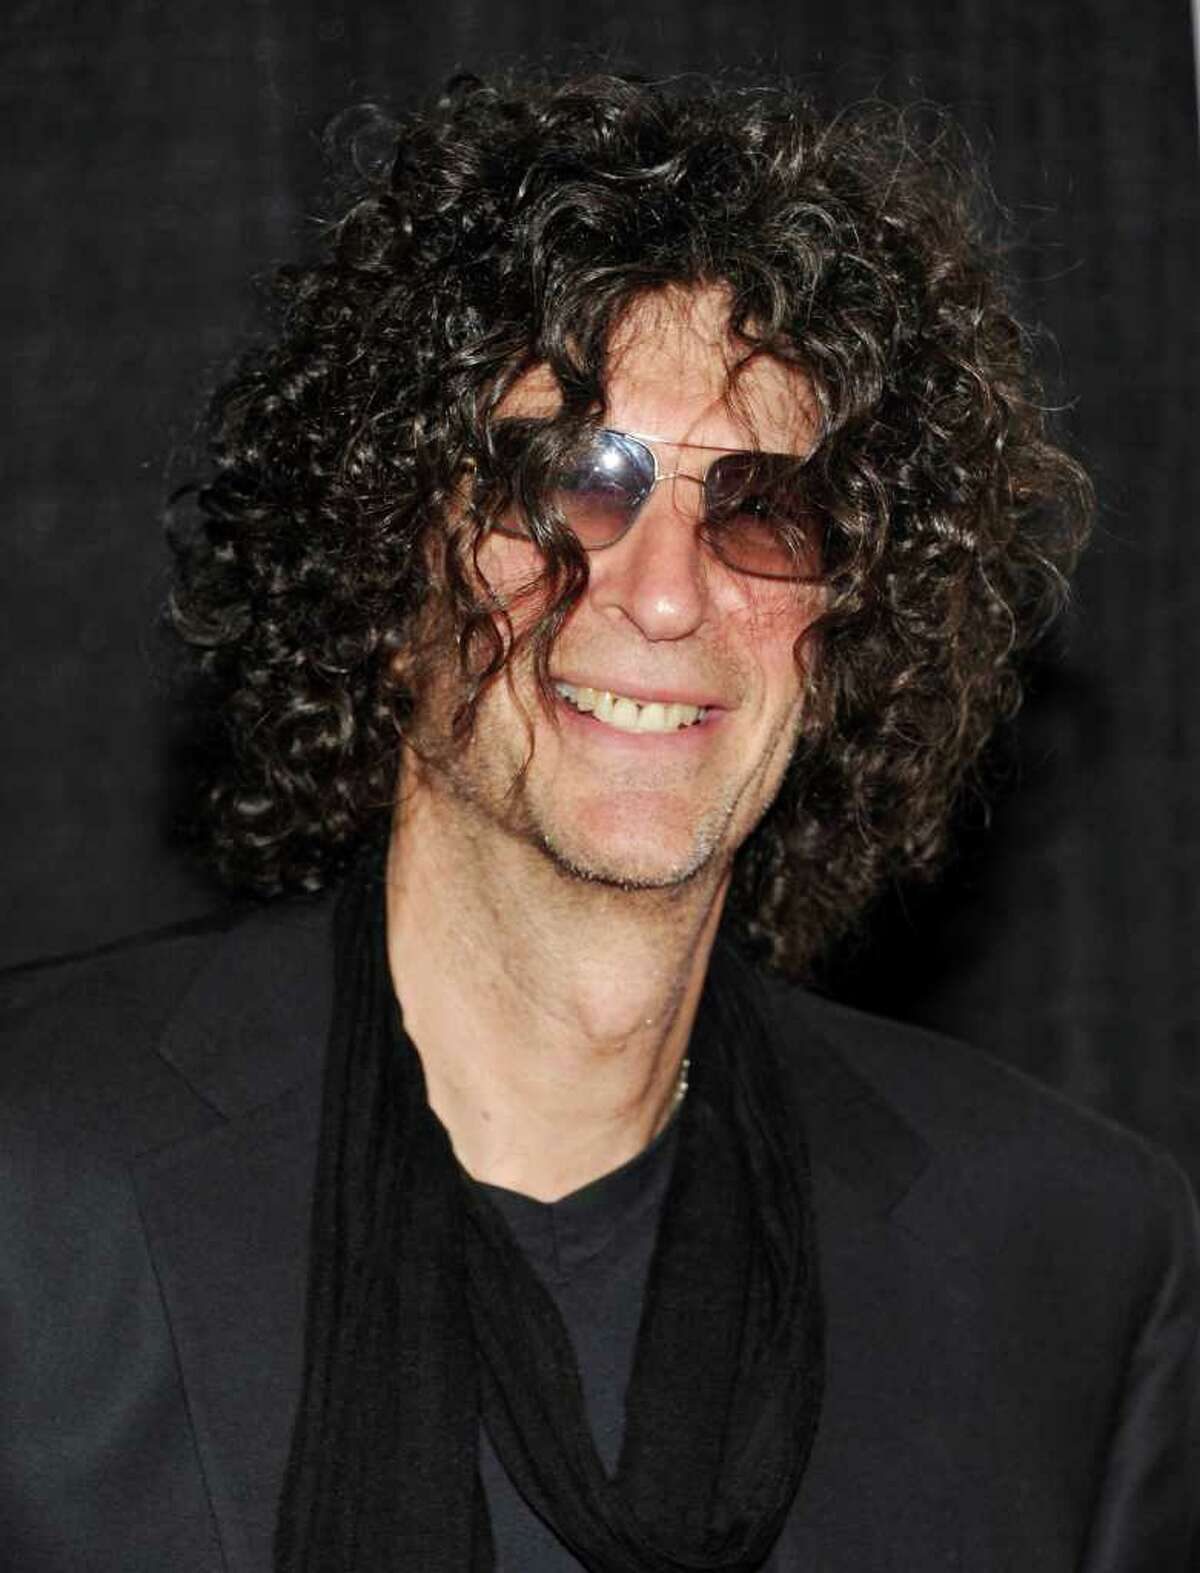 FILE - In a Dec. 1, 2010 file photo, Howard Stern attends the Quentin Tarantino Friars Club Roast at the New York Hilton Hotel in New York. Stern will be joining the judges' panel on